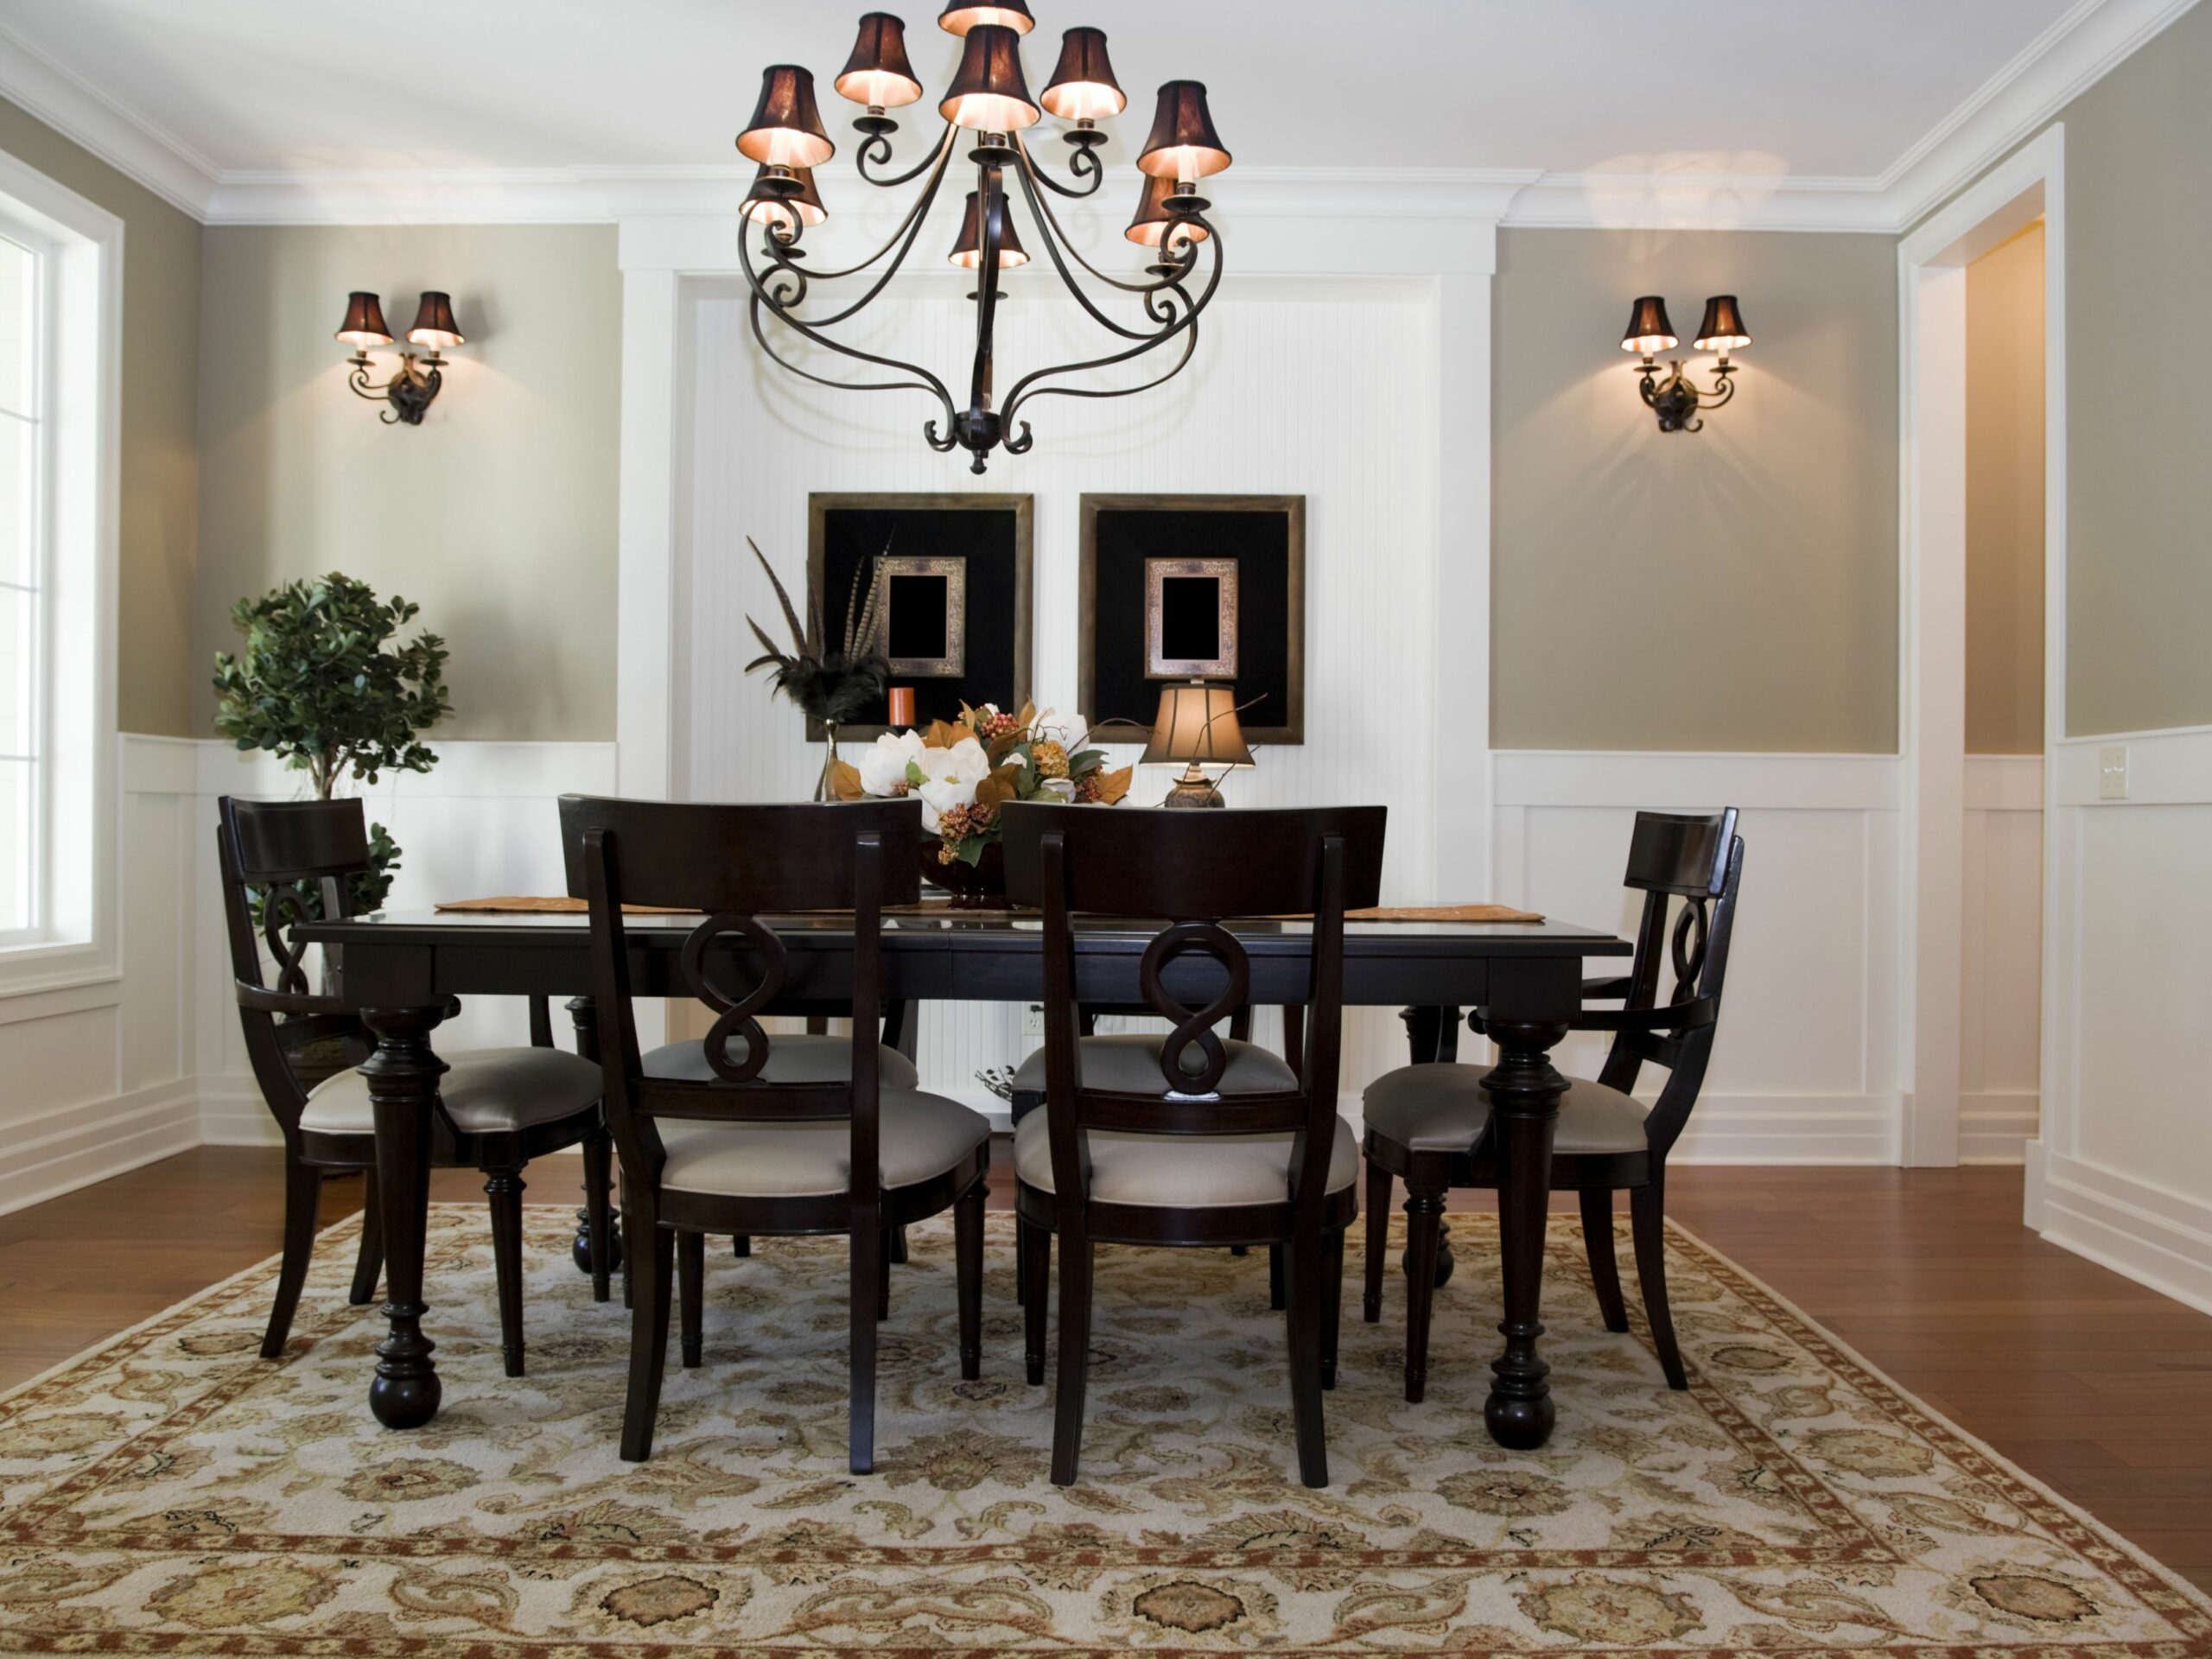 A Chair Rail Gives Your Home a Classic Look - dining room trim ideas